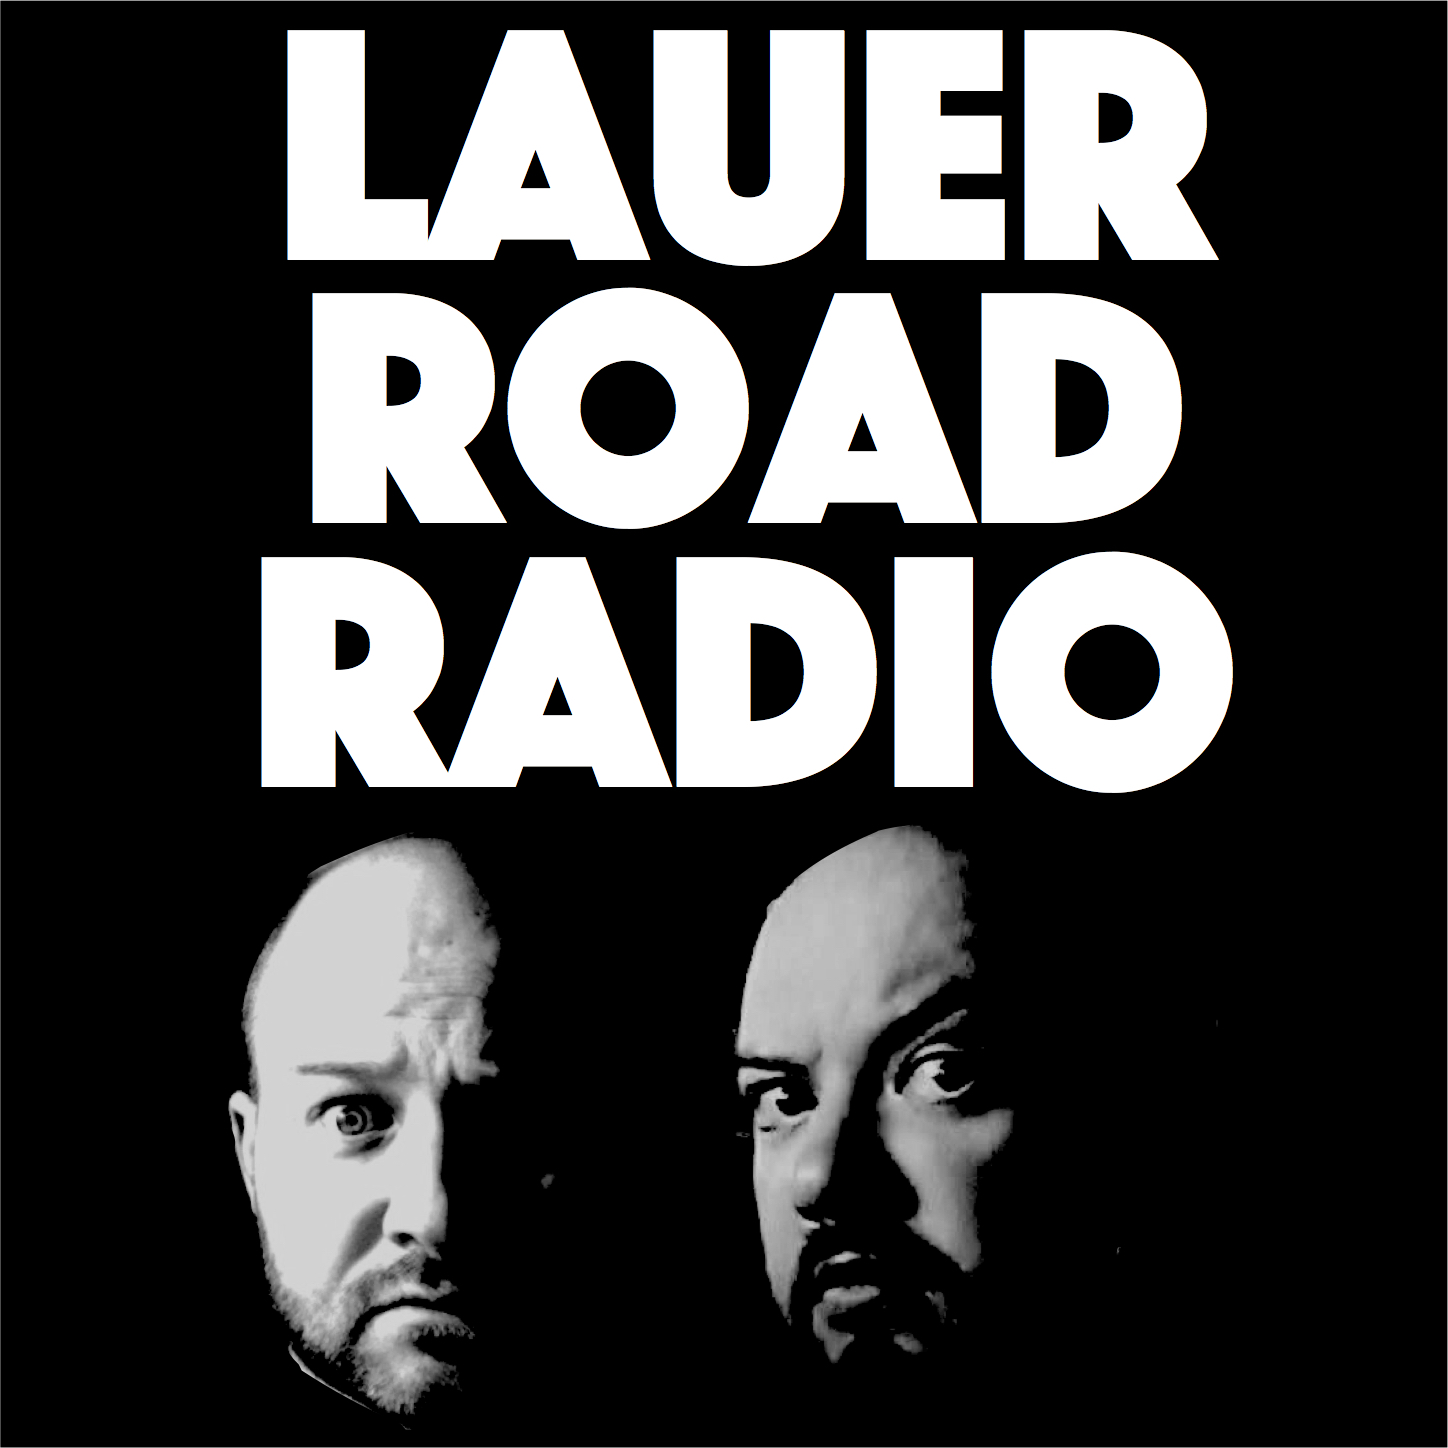 The Lauer Road Radio Theme Song